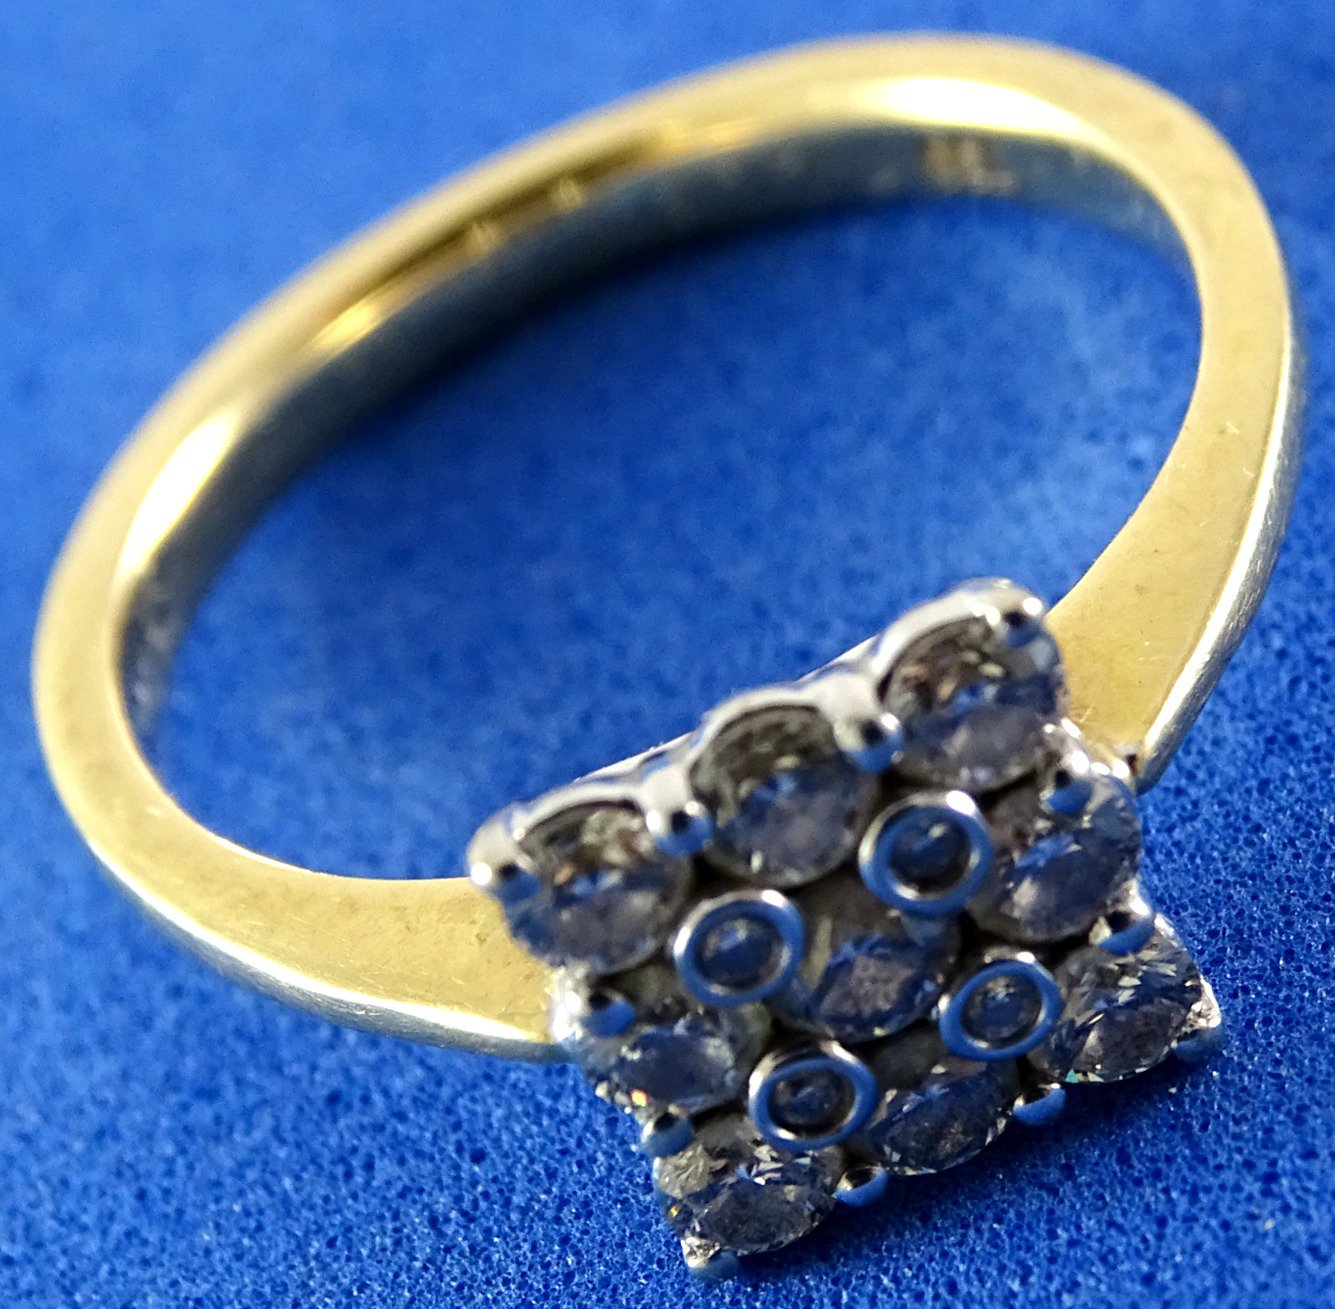 Secondhand Jewellery, Beautiful GOLDEN Ring 18Kt with 13 real ...